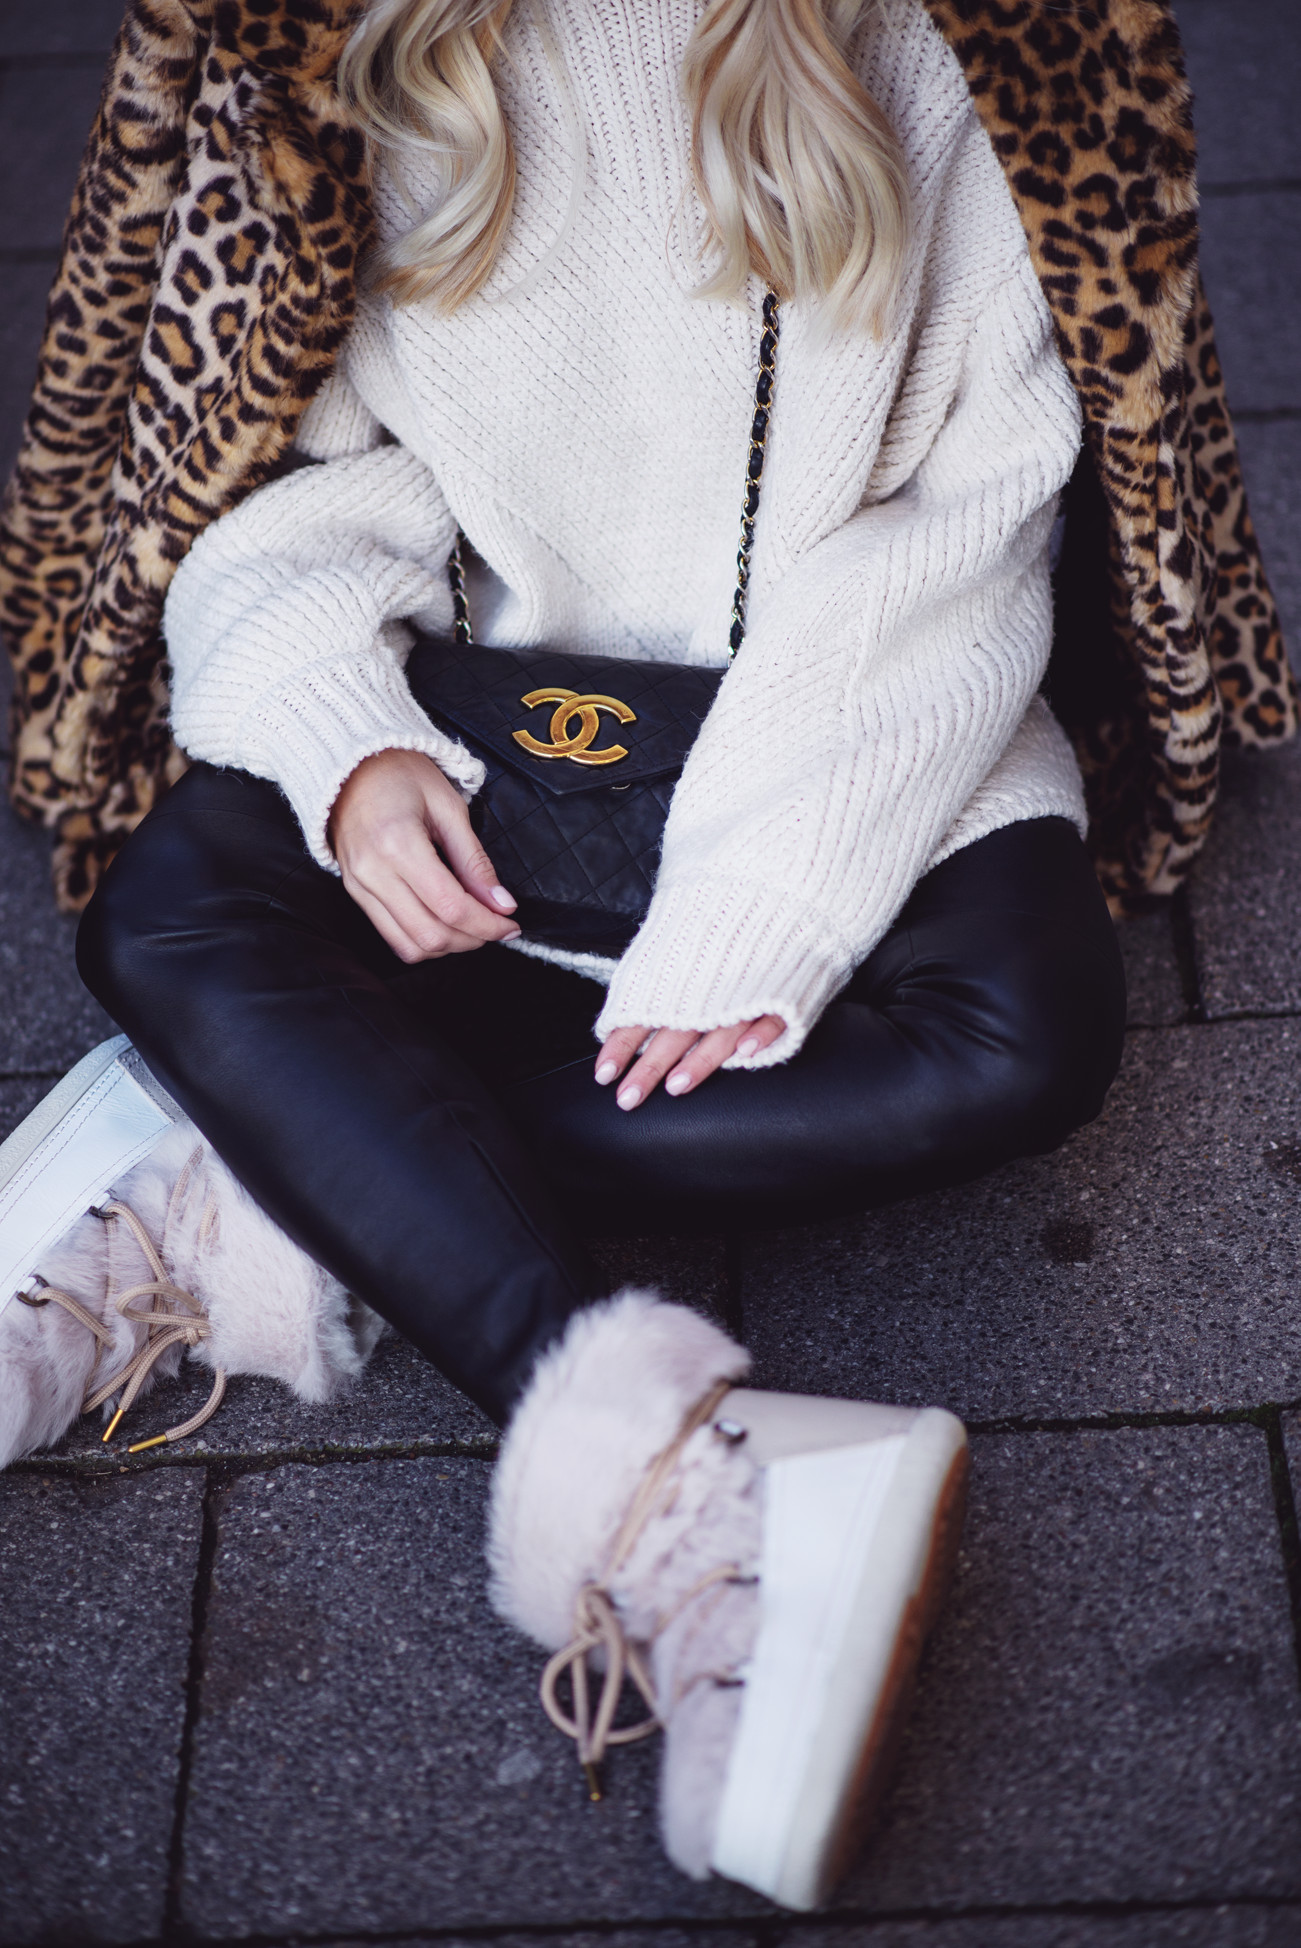 fashion-fashionblogger-blogger-chanel-winter-cozy-knitwear-leo-sequinsophia-7-dsc_6330